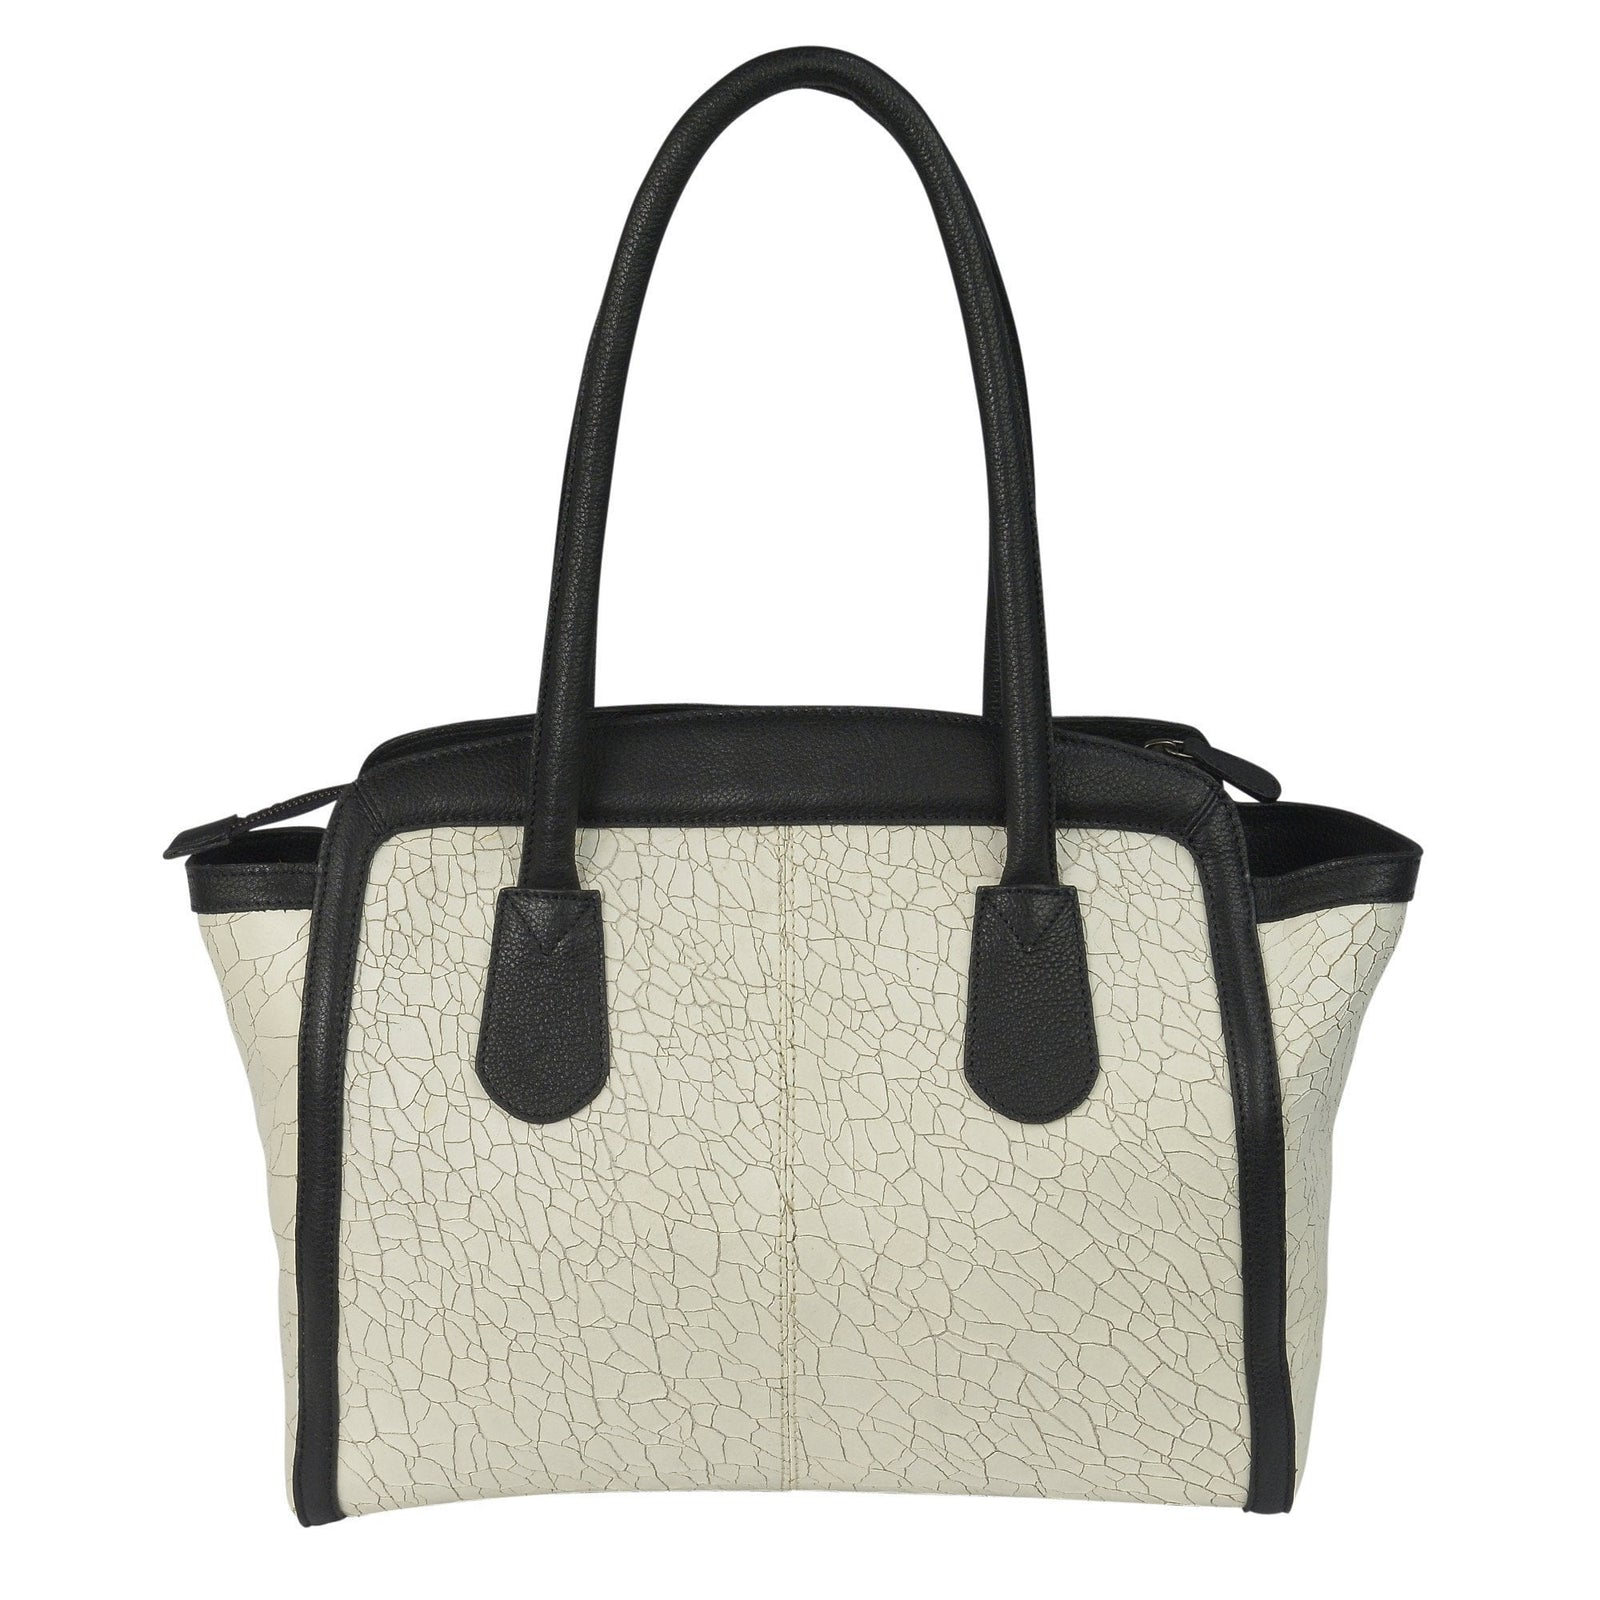 CHRISTINE - Leather Bag in Black & White